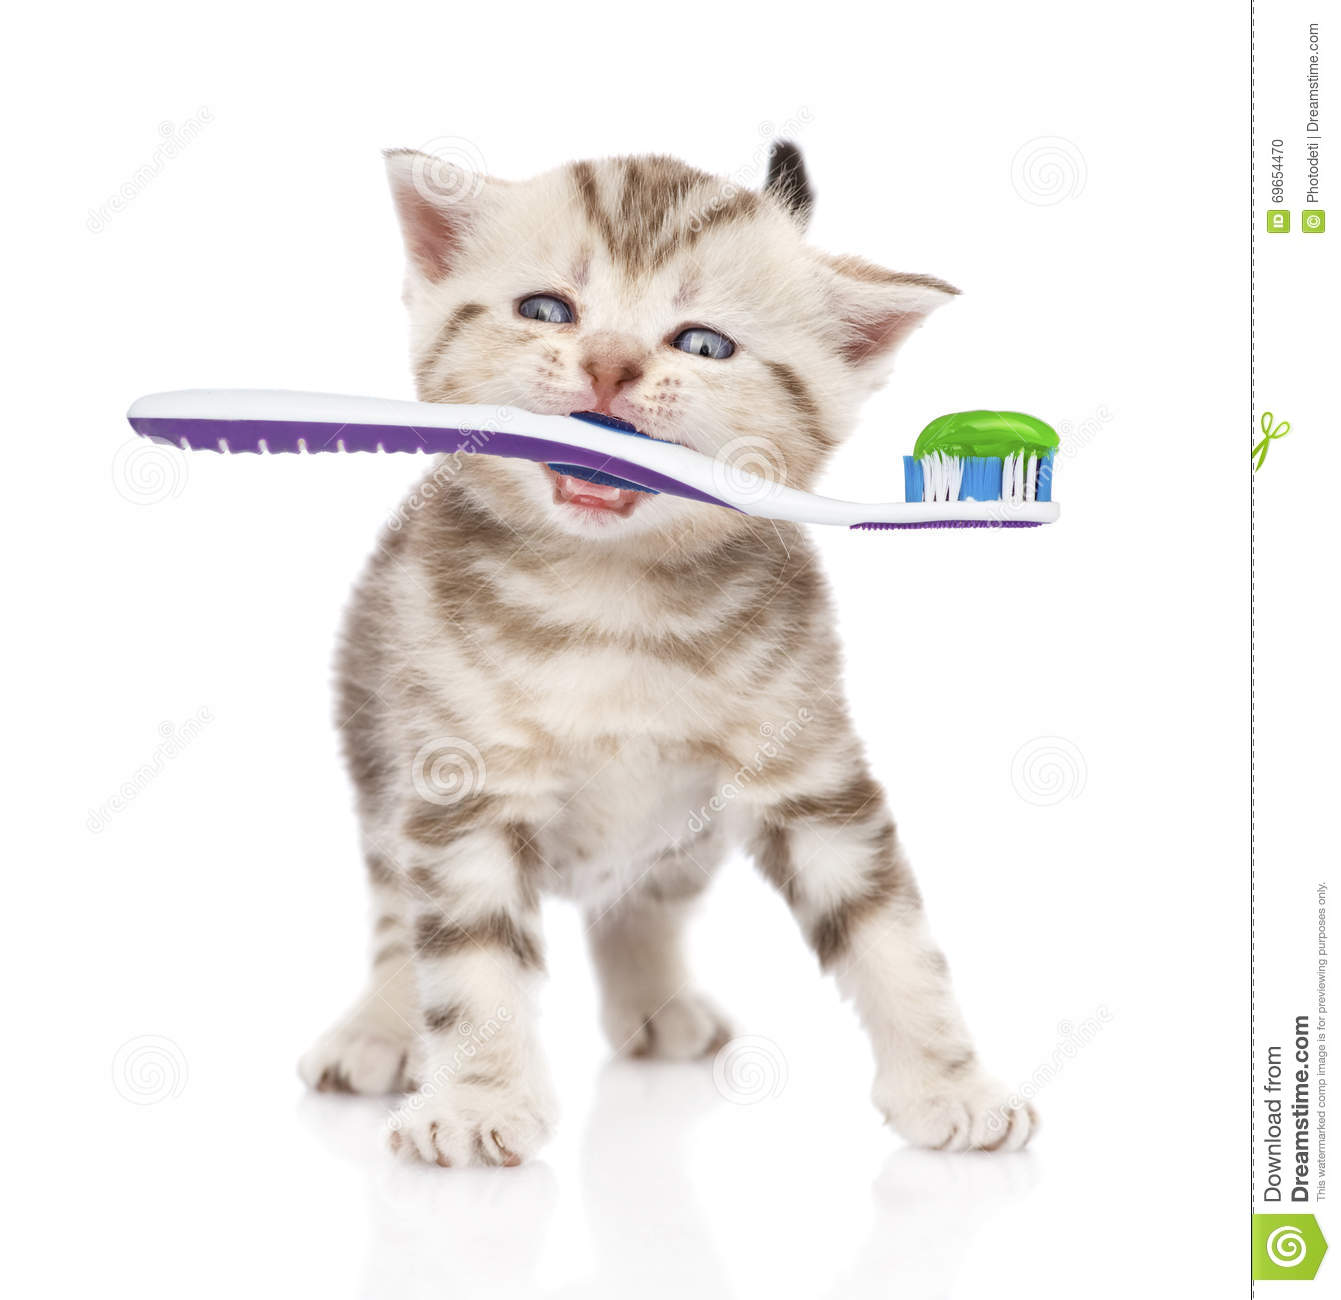 baby kitten with a toothbrush isolated on white background stock